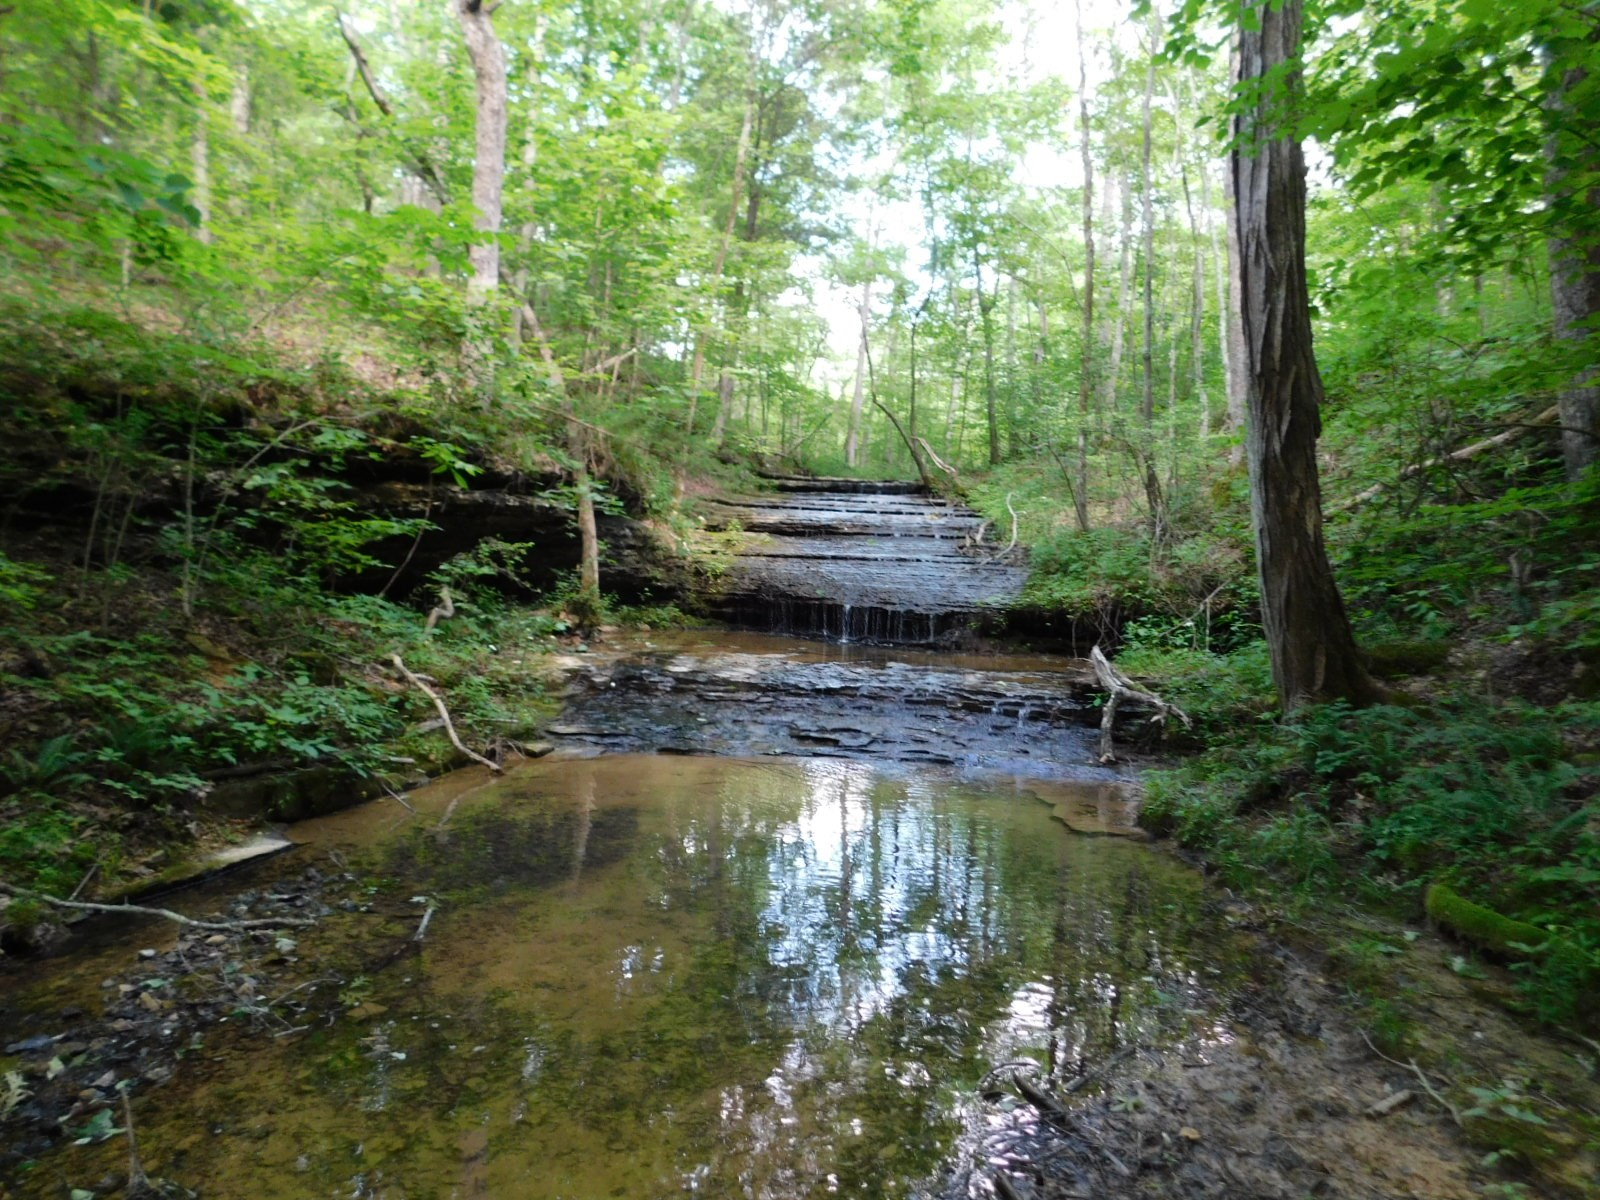 TN LAND FOR SALE WITH WATERFALL, CREEK, TIMBER, HUNTING 95AC